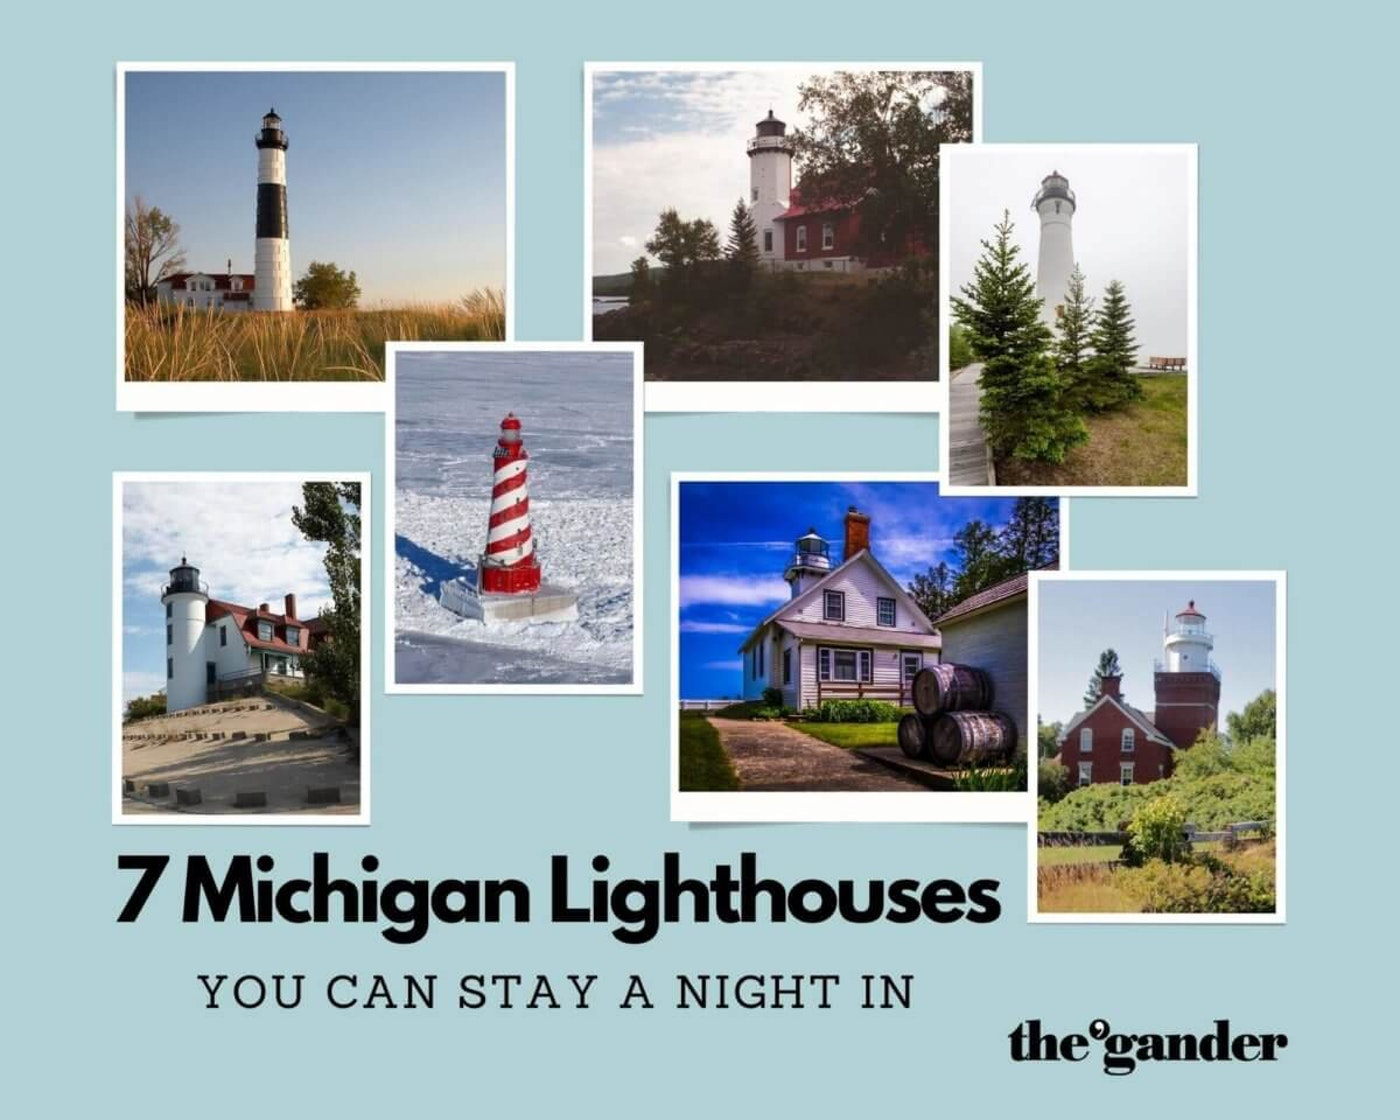 7 Michigan Lighthouses You Can Stay a Night In